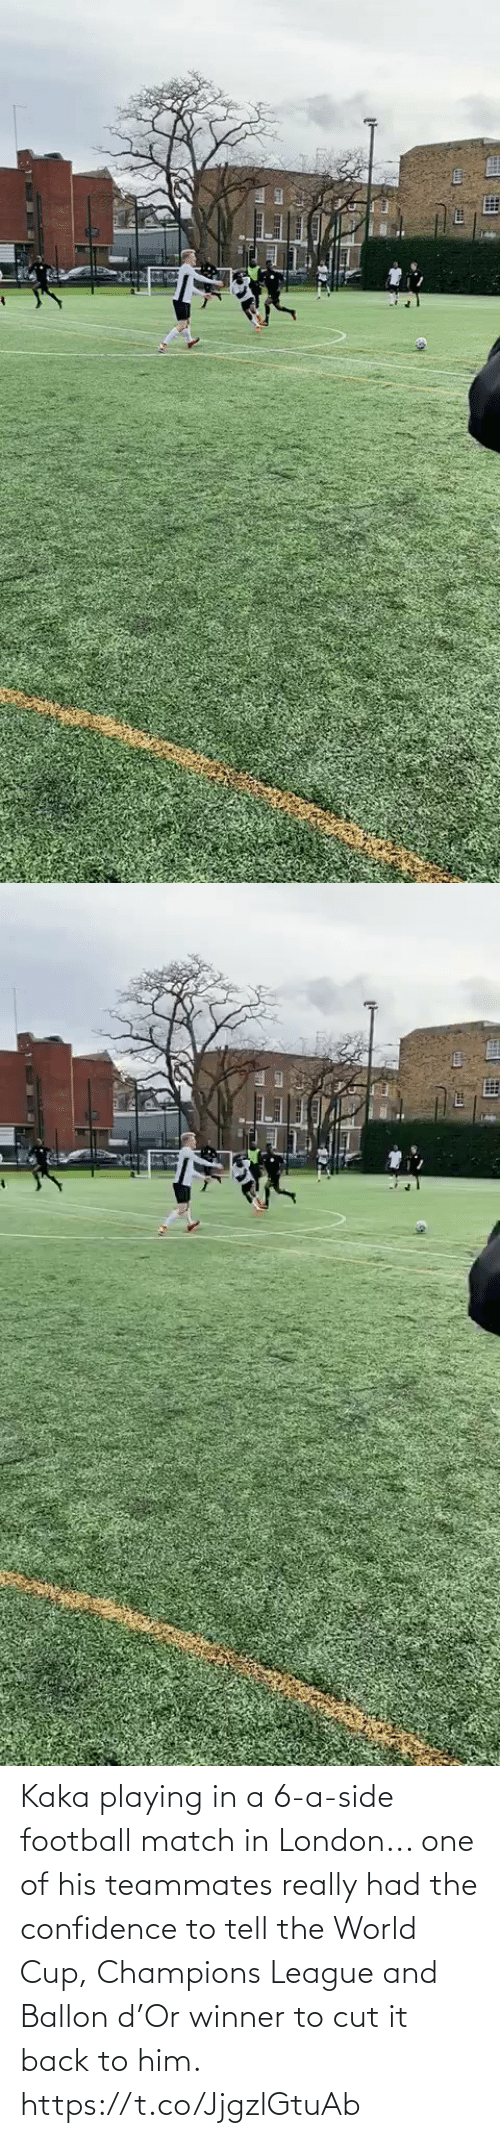 Confidence: Kaka playing in a 6-a-side football match in London... one of his teammates really had the confidence to tell the World Cup, Champions League and Ballon d'Or winner to cut it back to him.   https://t.co/JjgzlGtuAb